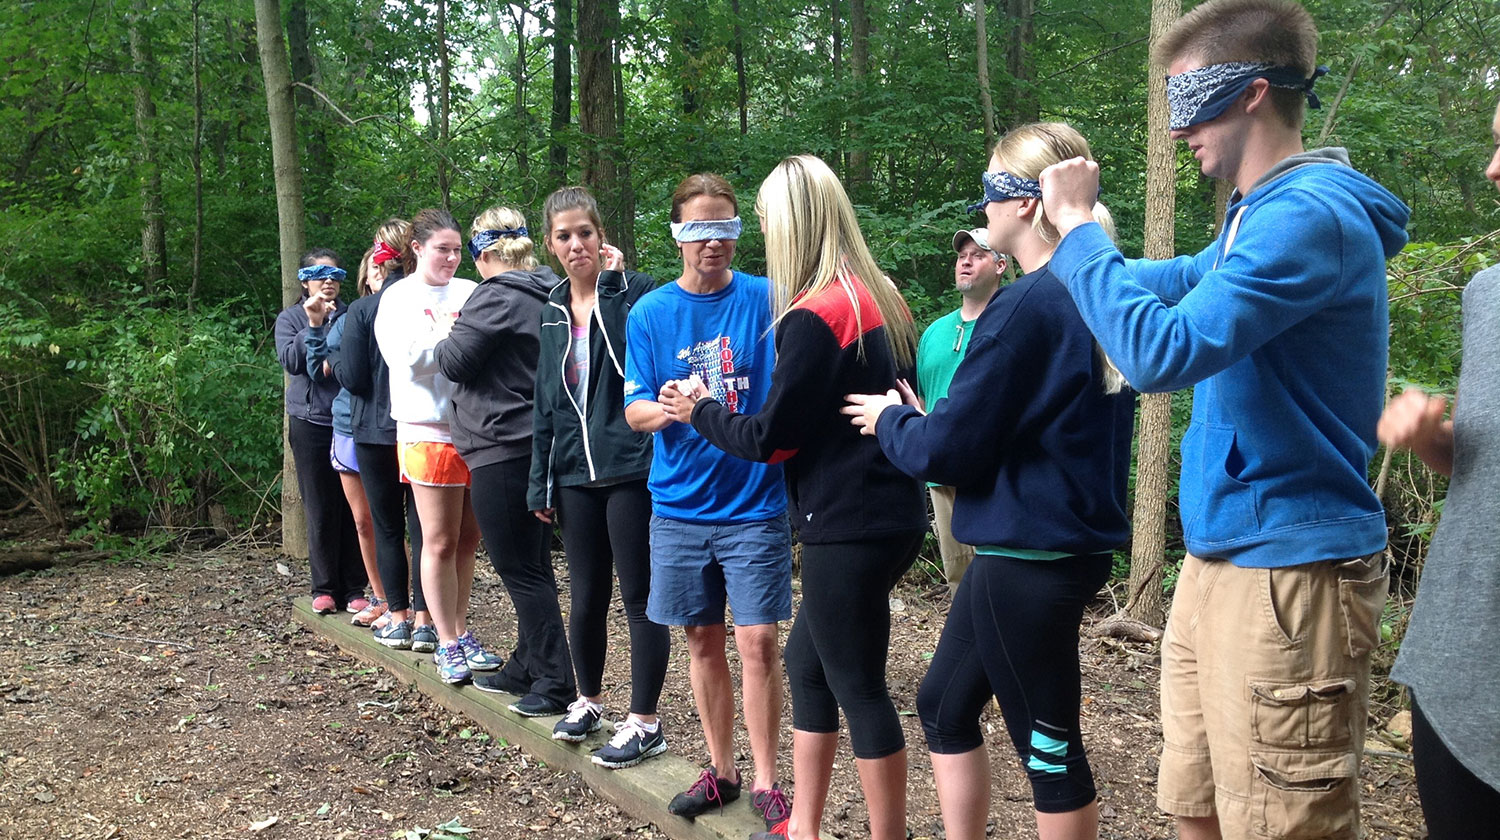 Students working together at an activity in the woods.